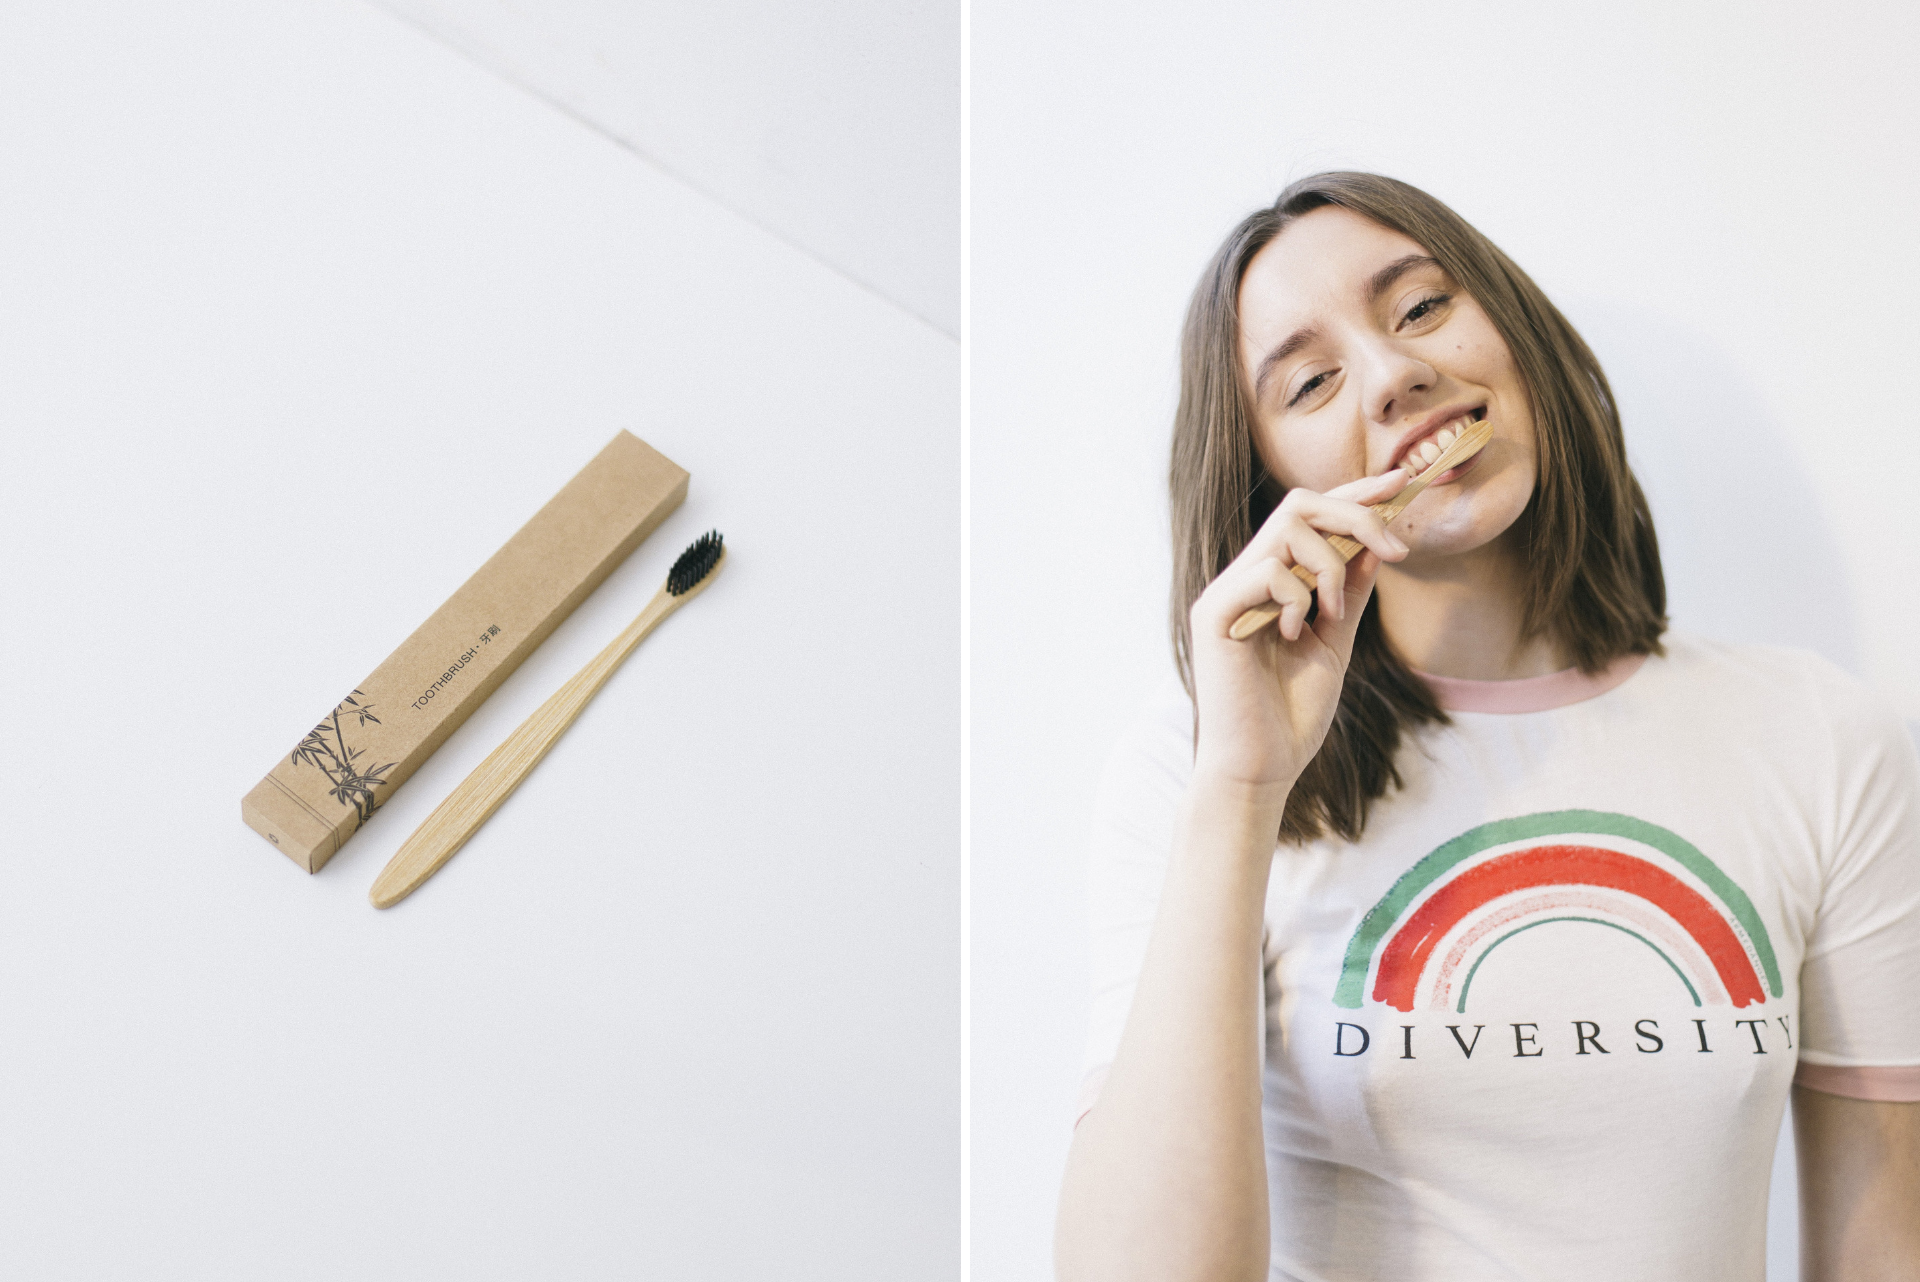 Bamboo toothbrush. Plastic-free toothbrush. Eco-friendly toothbrush. White girl with brown hair brushing teeth and smiling wearing a rainbow Diversity tee.